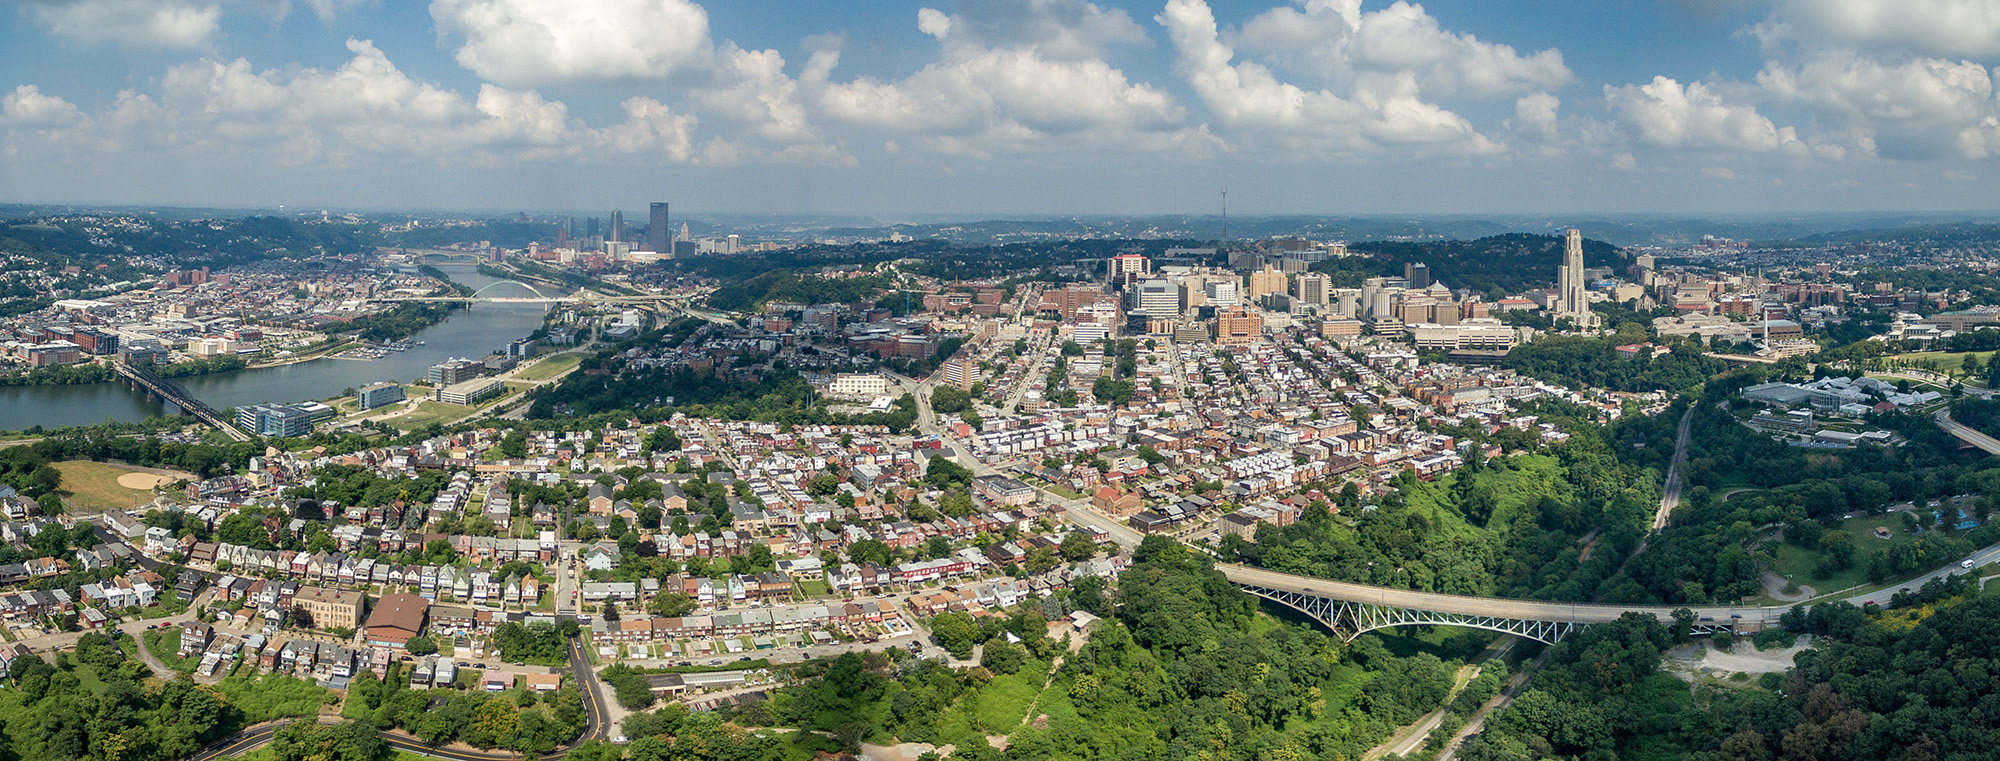 Why Relocate To Pittsburgh? Why Not! - Metroguide